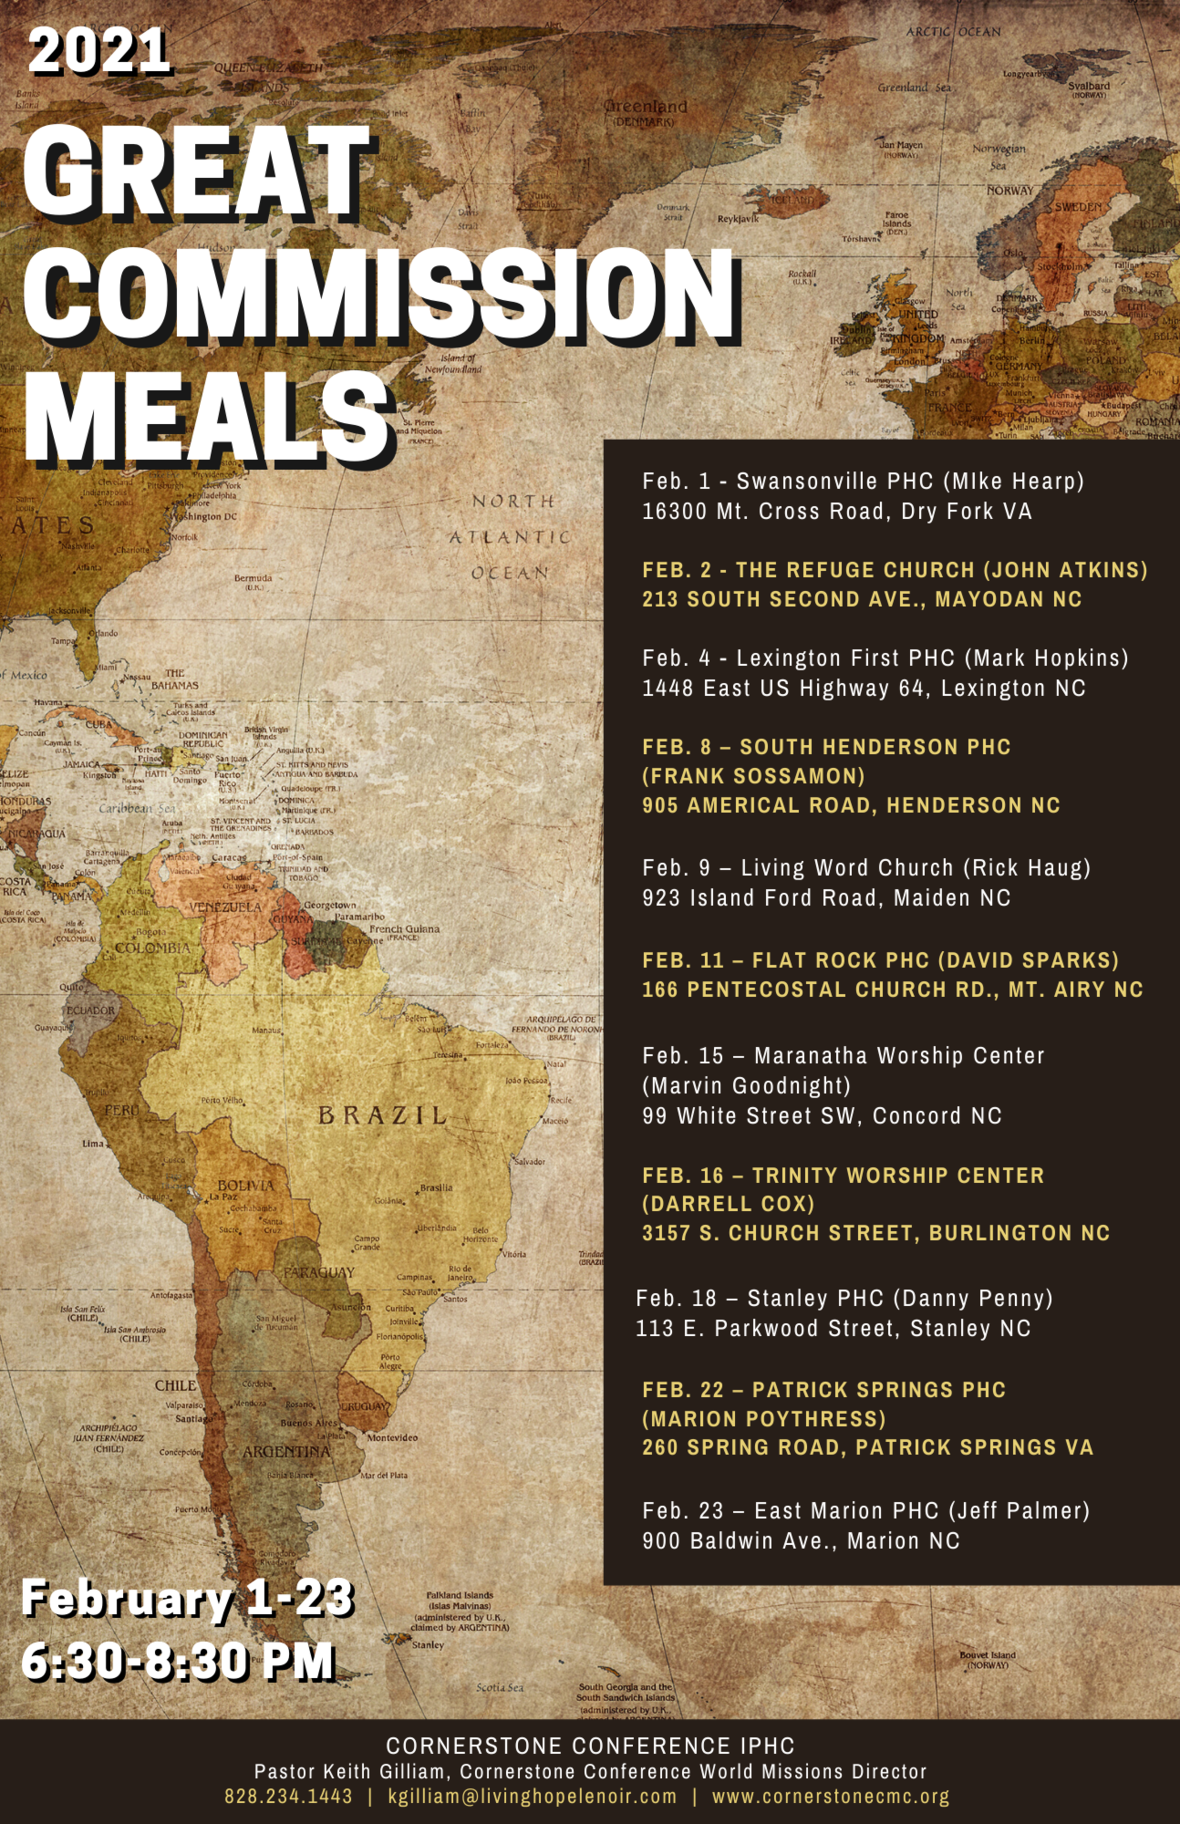 2021 Great Commission Meals